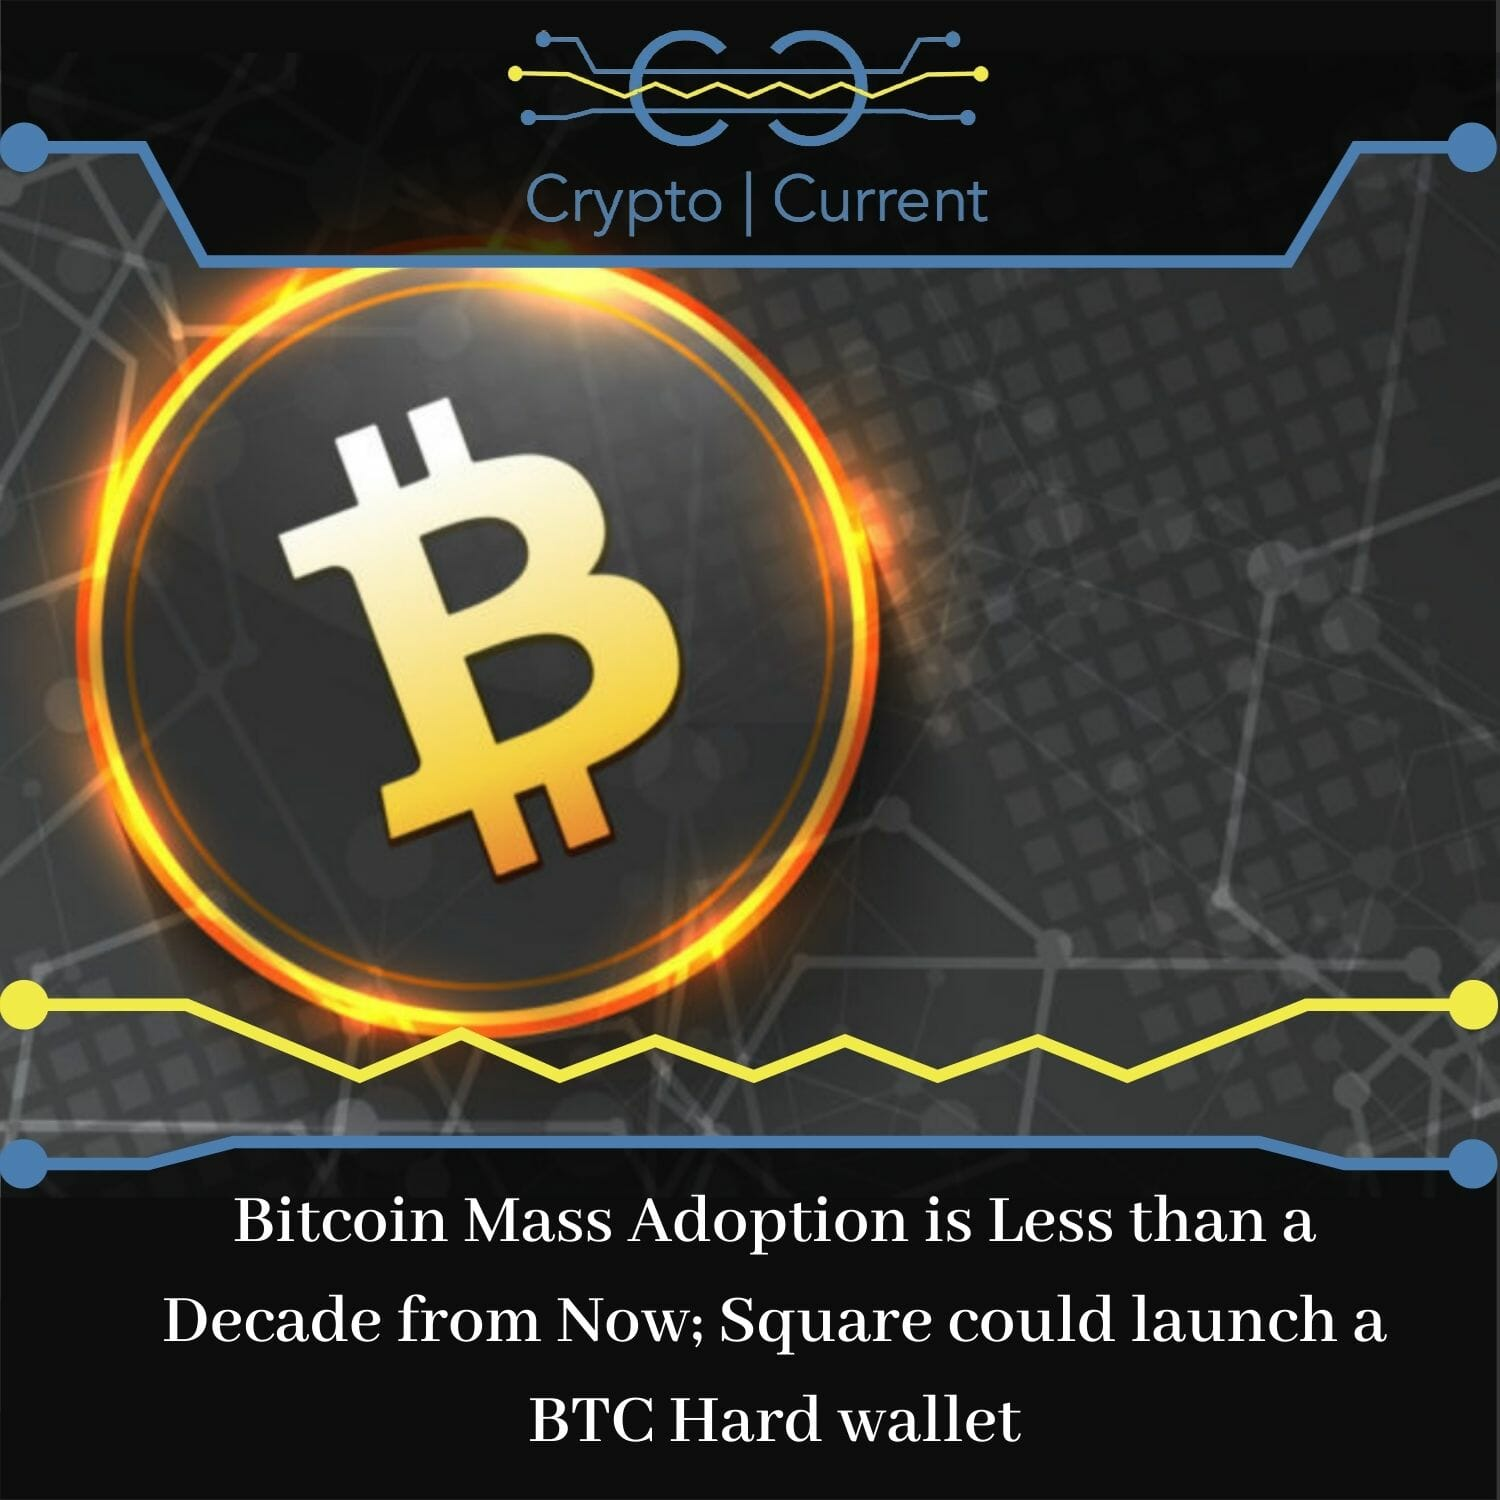 Bitcoin Mass Adoption is Less than a Decade from Now; Square could launch a BTC Hard wallet